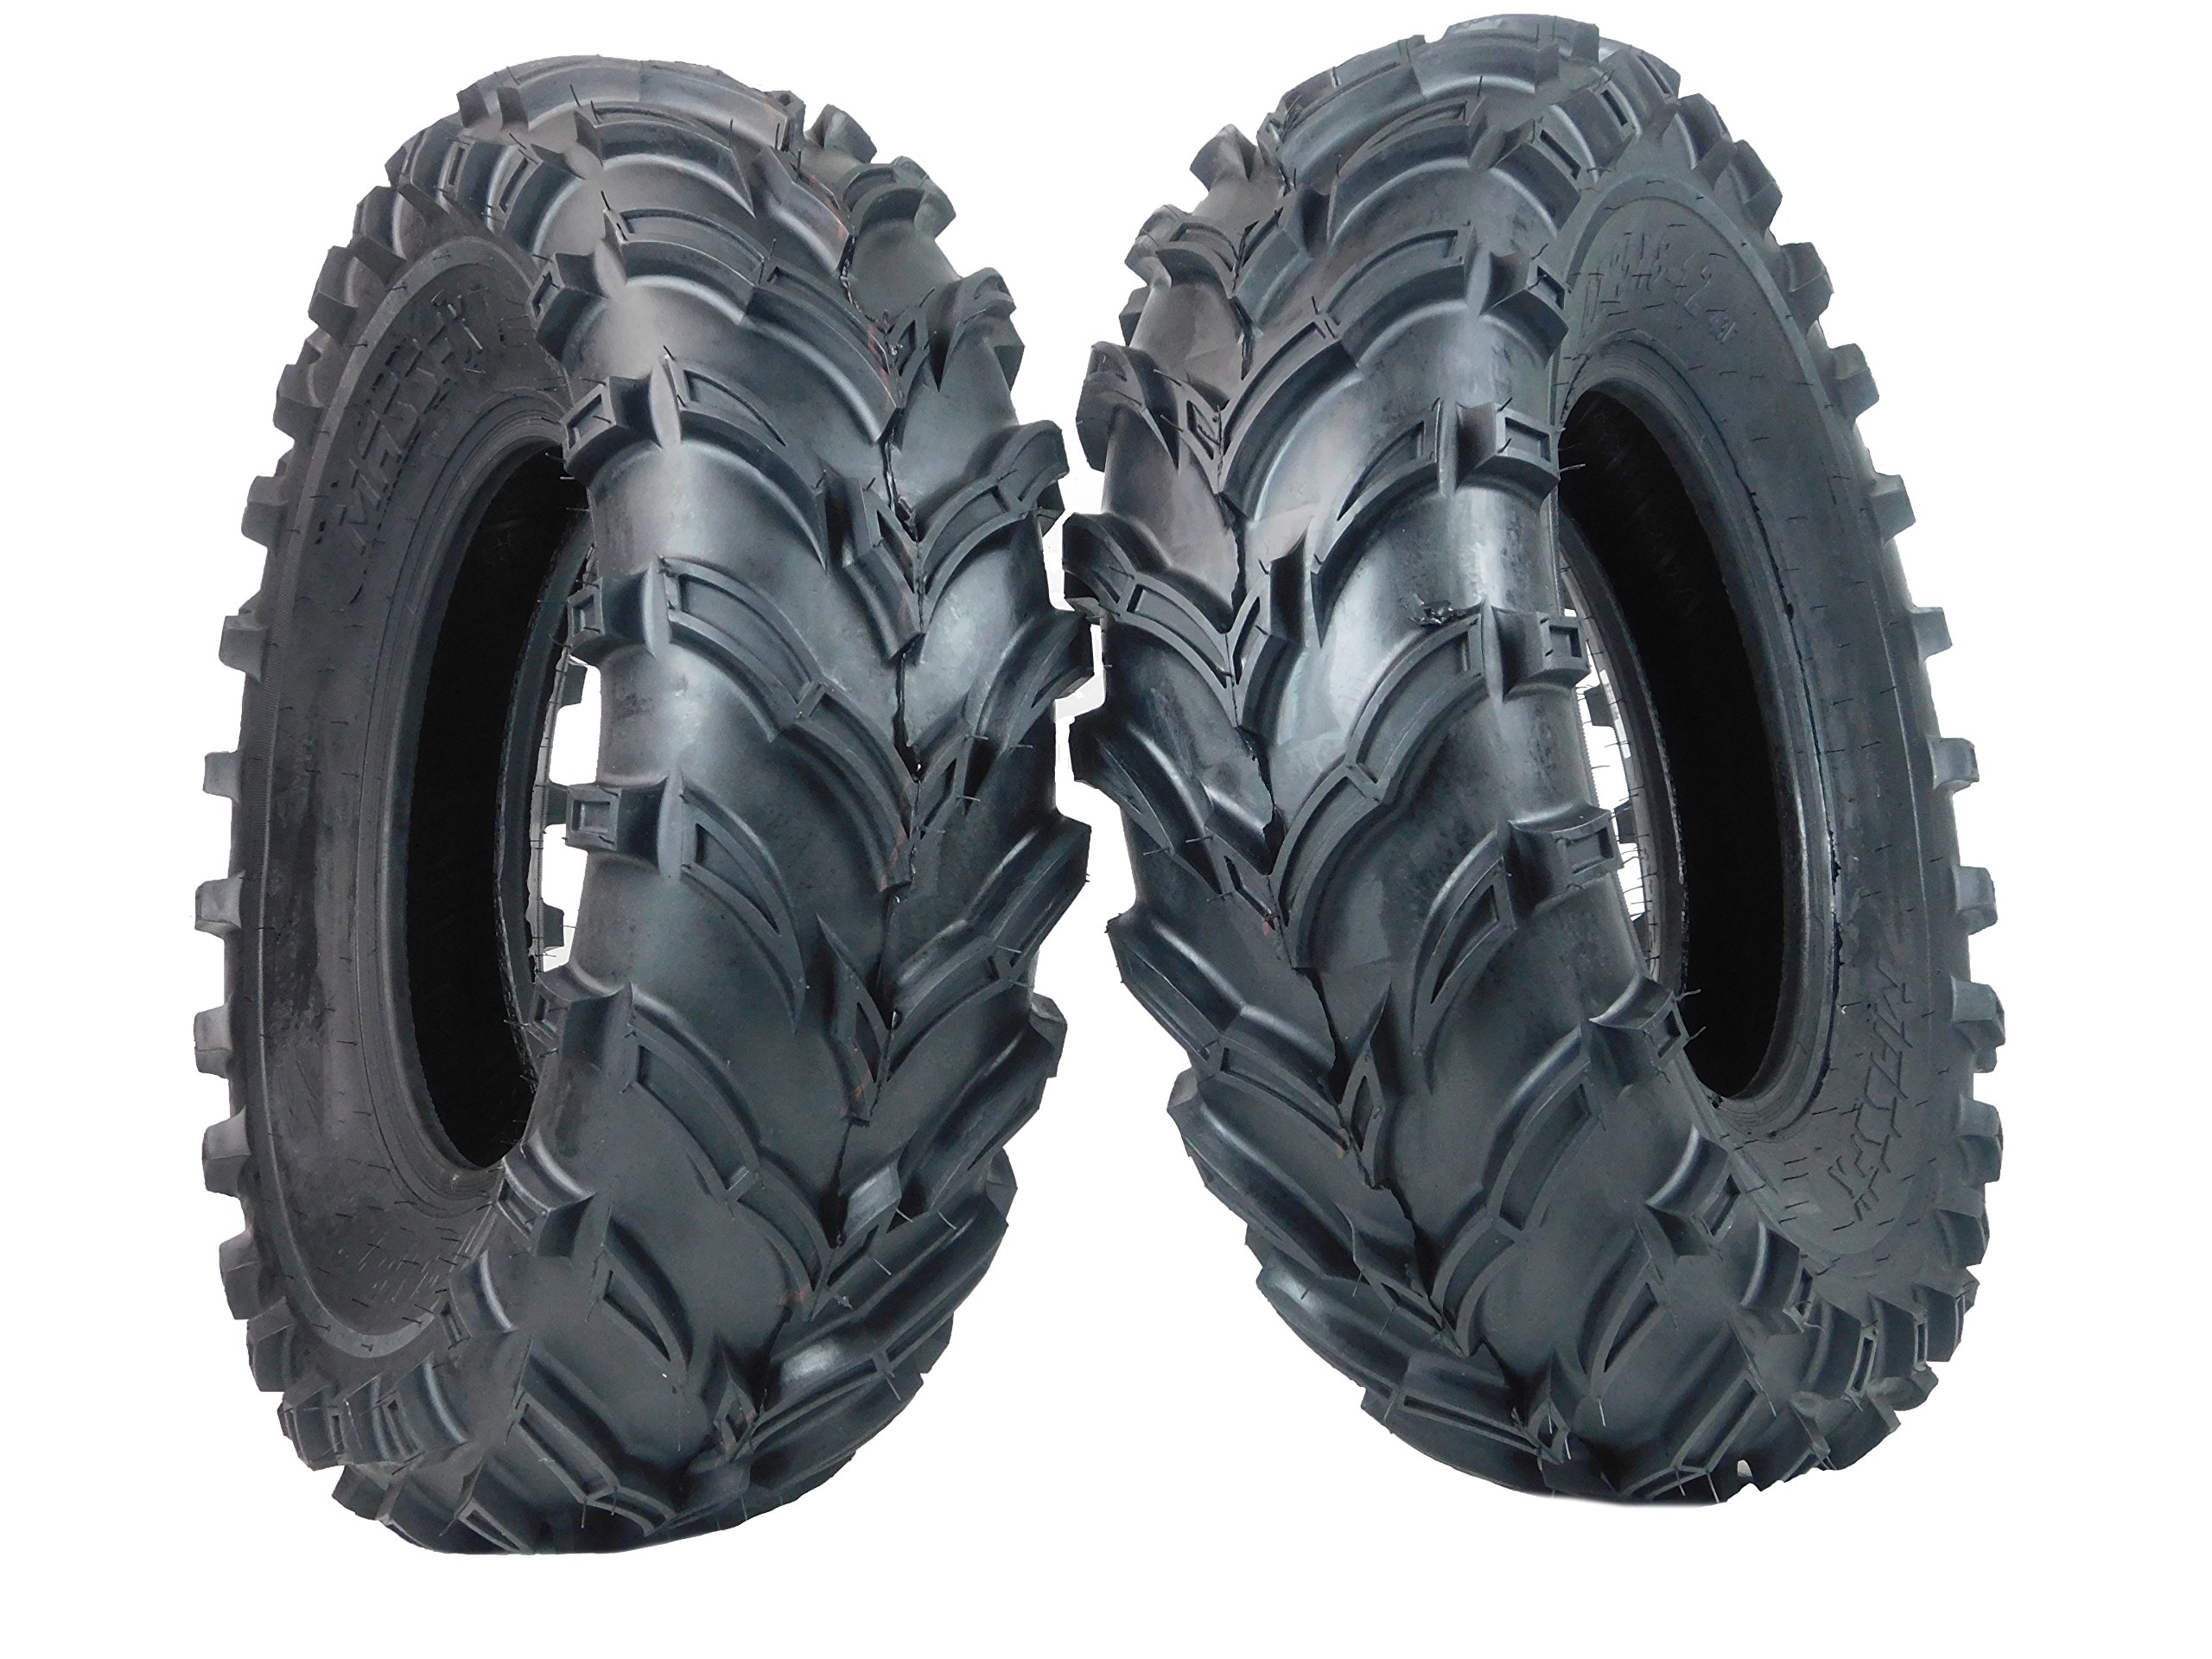 One Pair of MassFx P377 ATV/UTV Front Tires 25x8-12 Front Set of 2 25x8x12